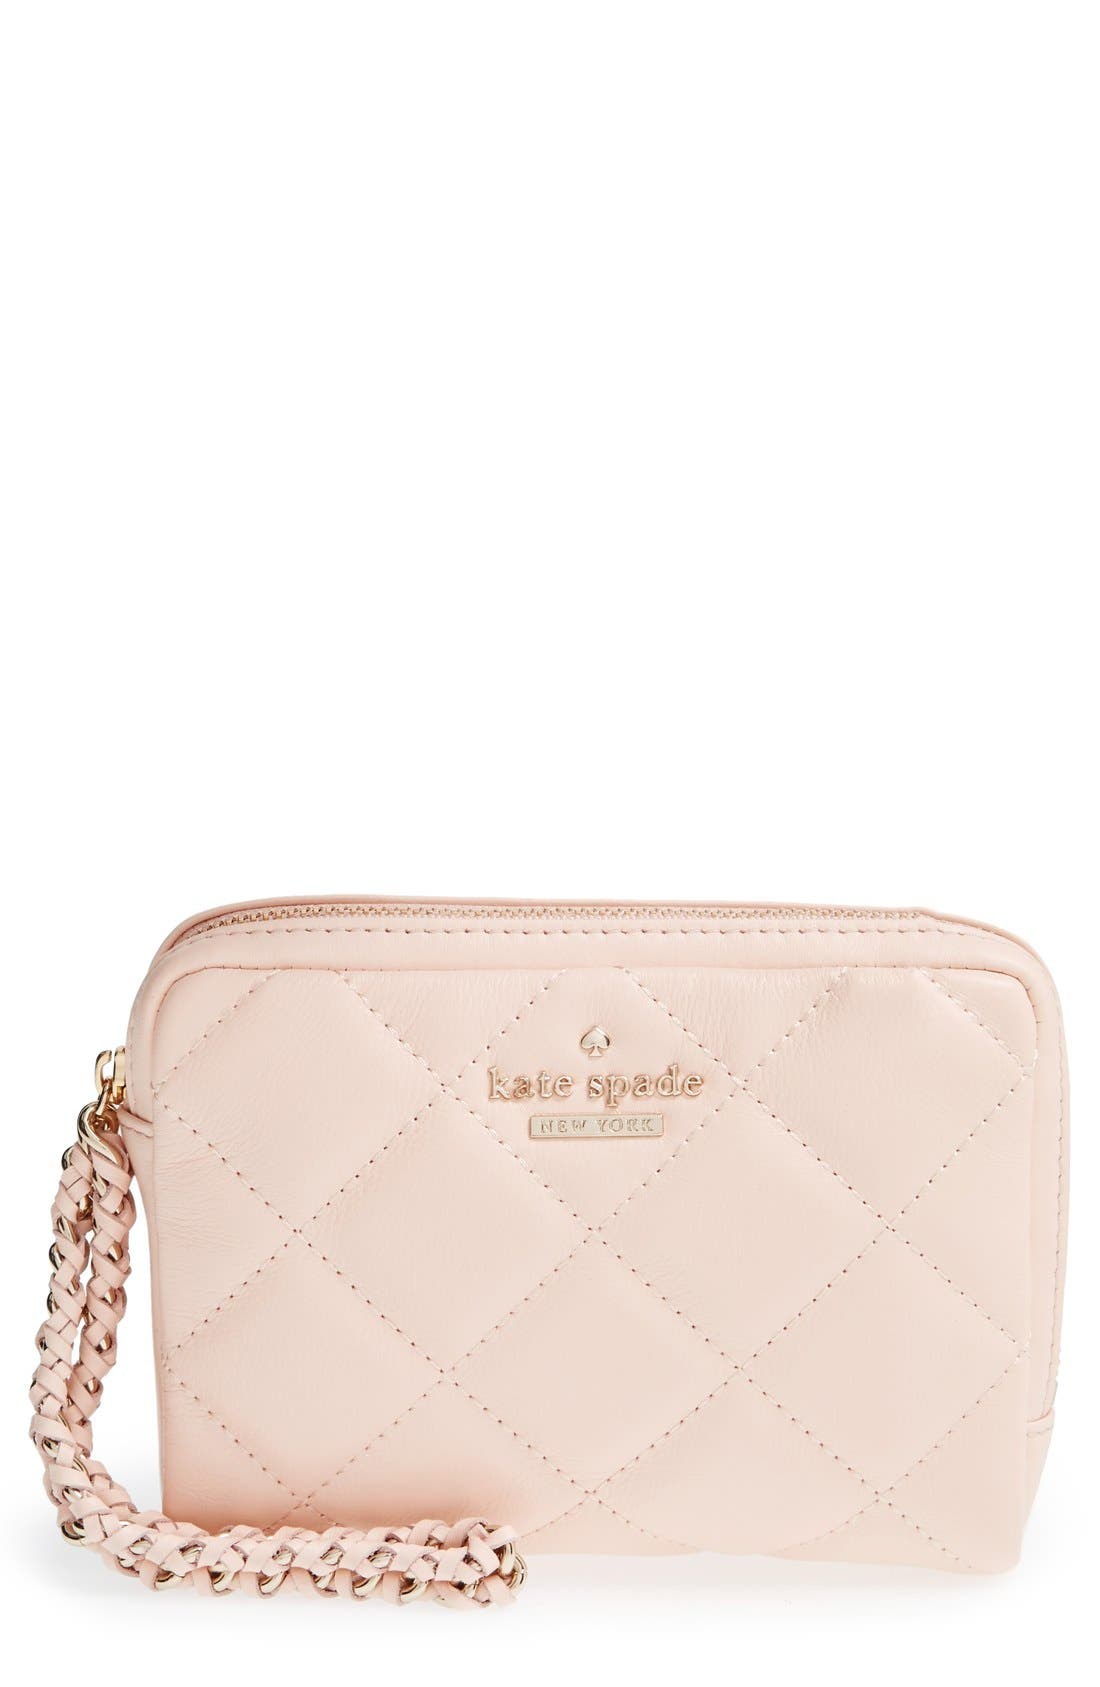 Main Image - kate spade new york 'emerson place - essa' quilted leather wristlet